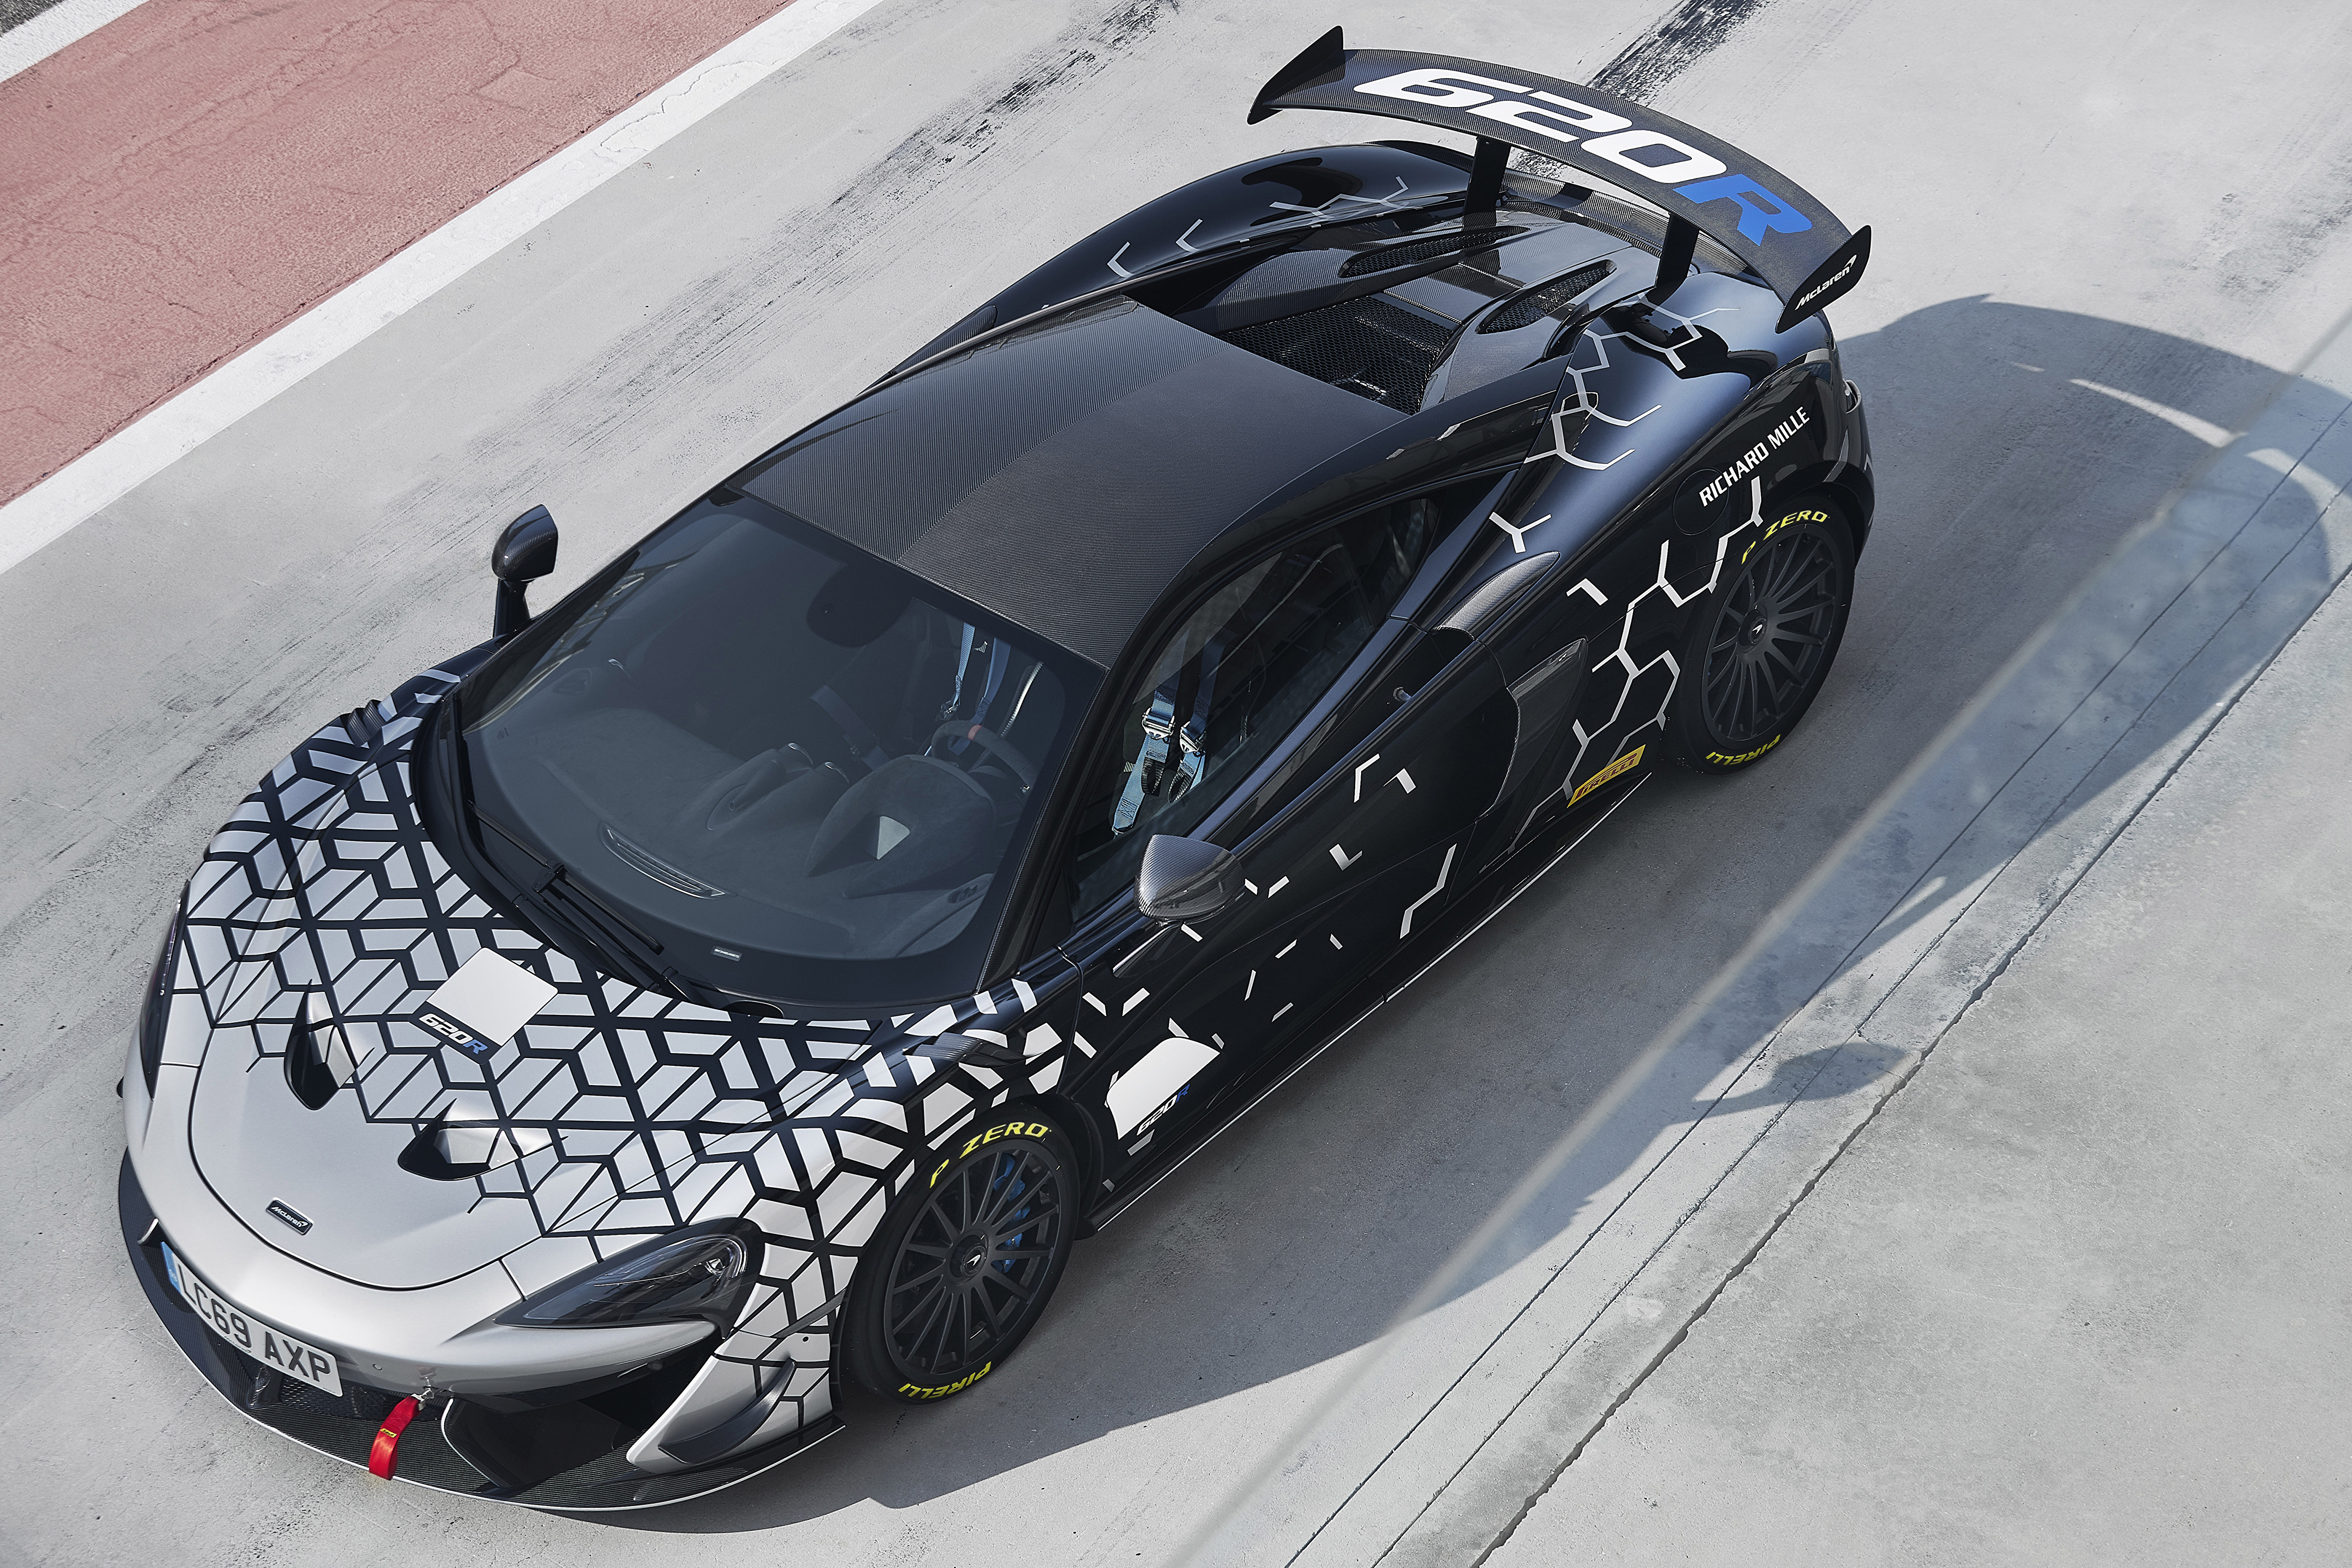 Photos Tuning McLaren 2020 620R Worldwide Cars From above 5120x3413 auto automobile